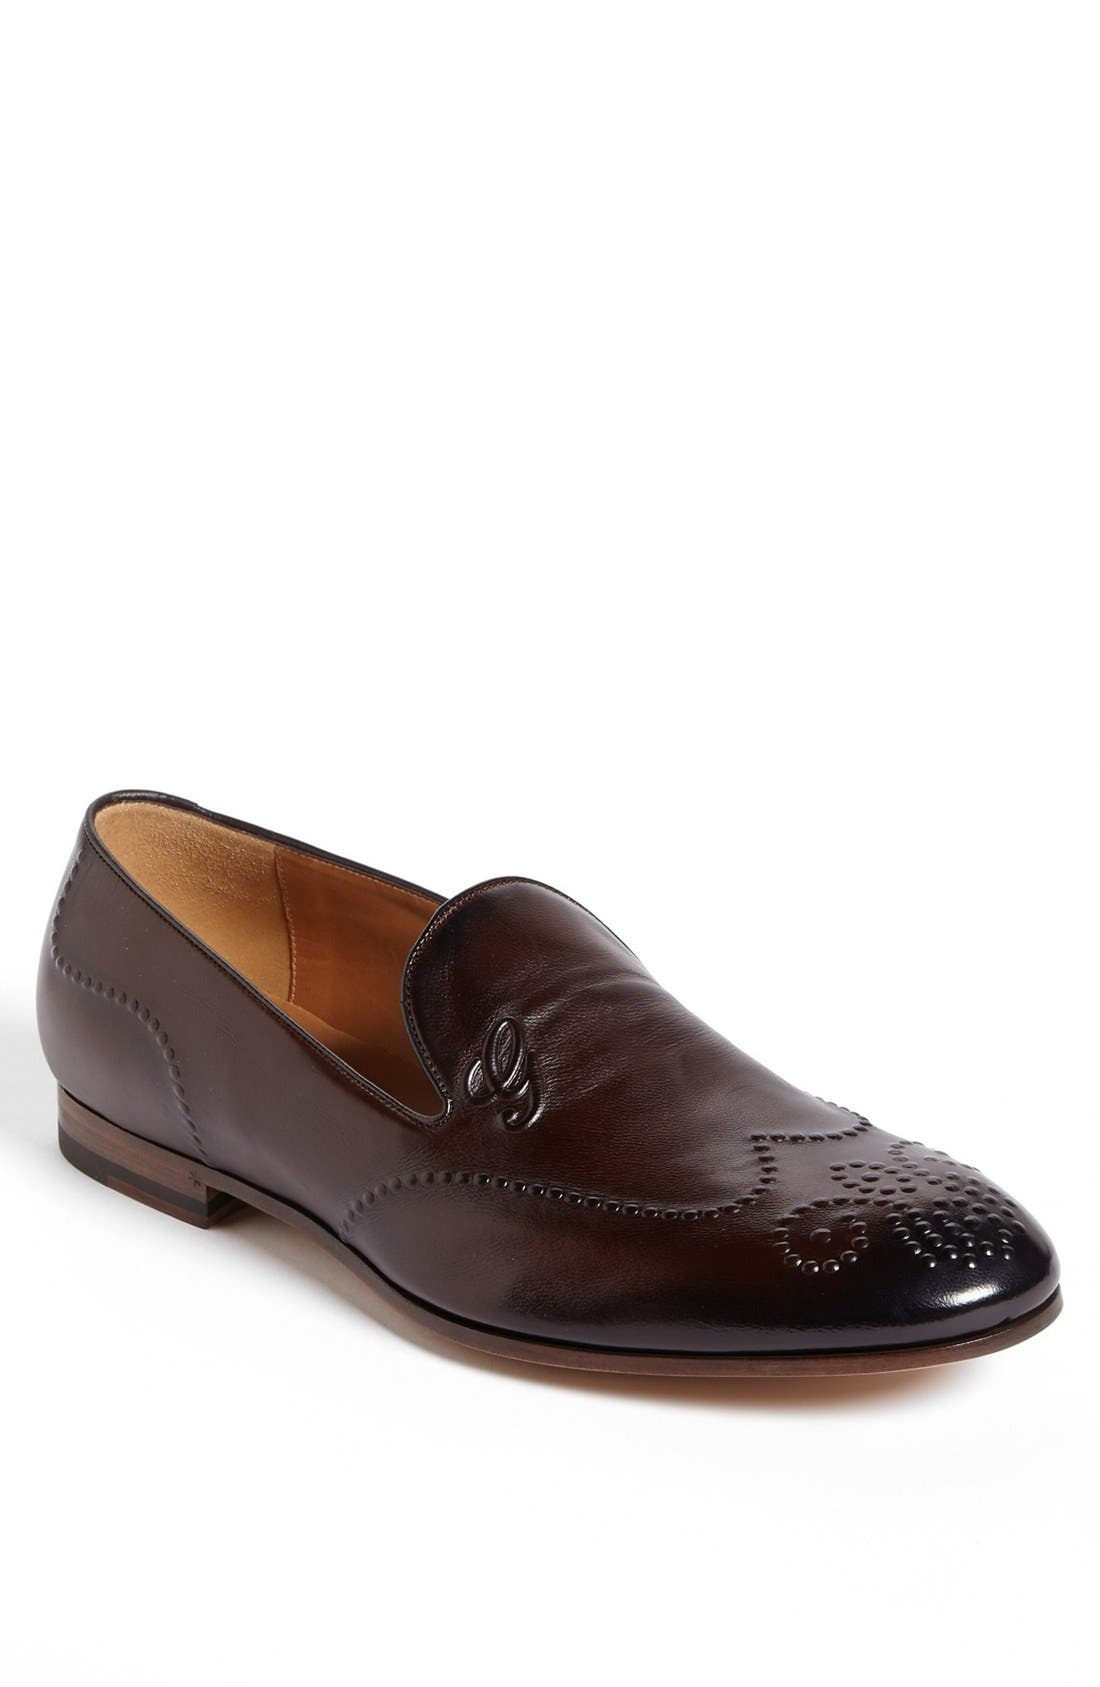 Main Image - Gucci 'Beren' Loafer